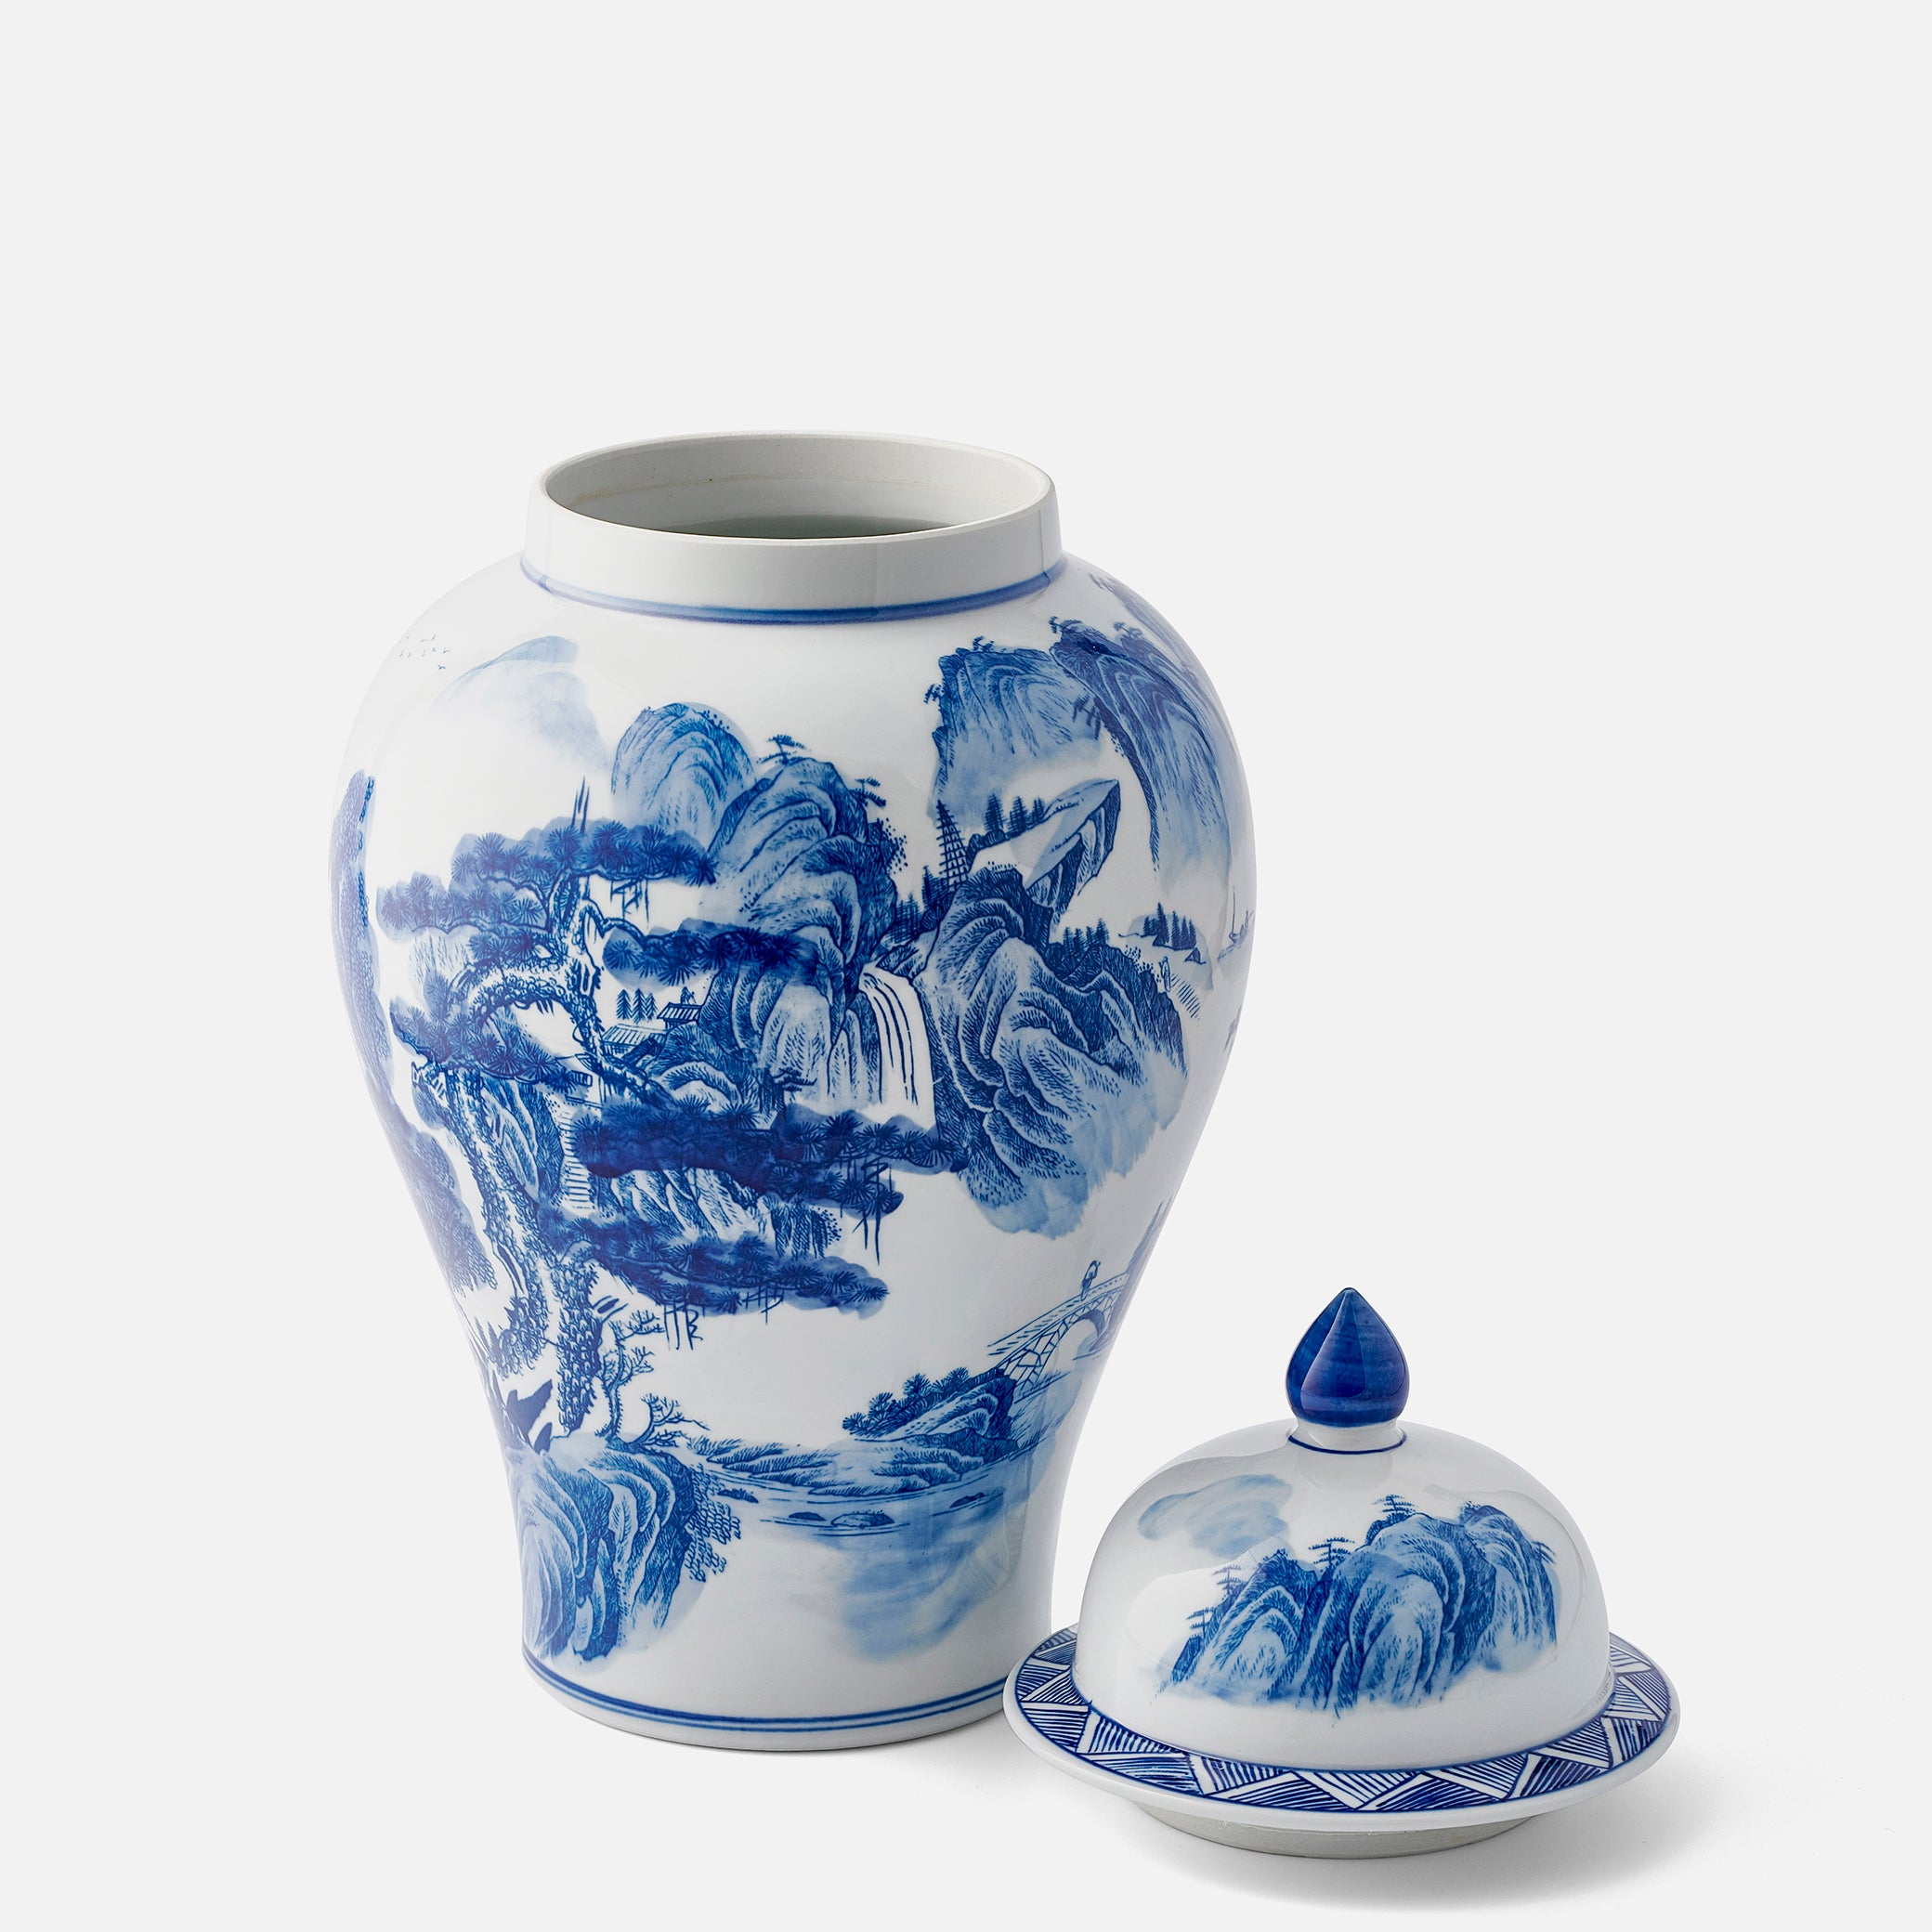 Large Ginger Jar with traditional Chinese Country Scene